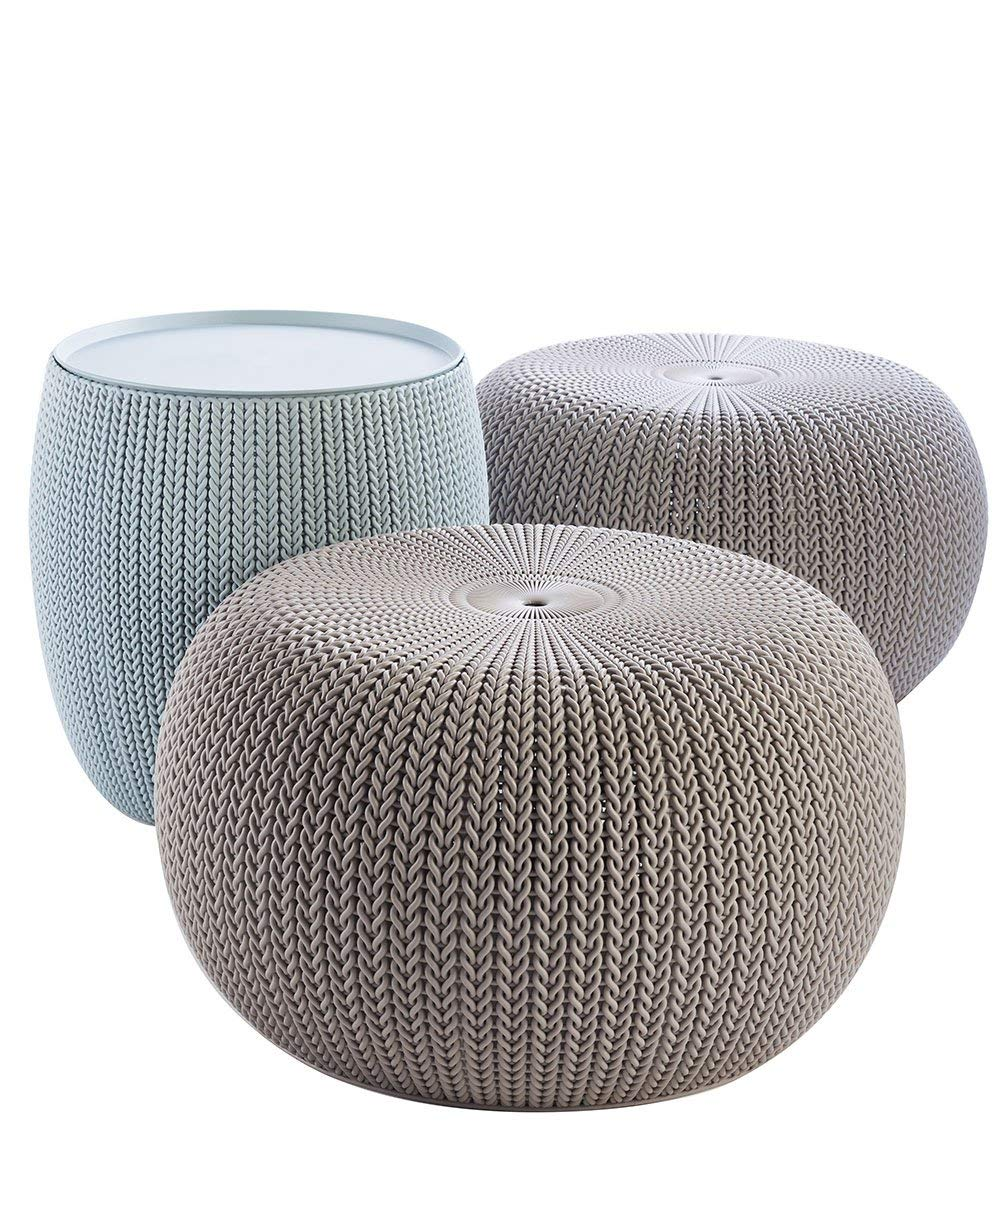 Keter 228474 Urban Knit Pouf Set, Misty Blue/Taupe (Renewed) by Keter